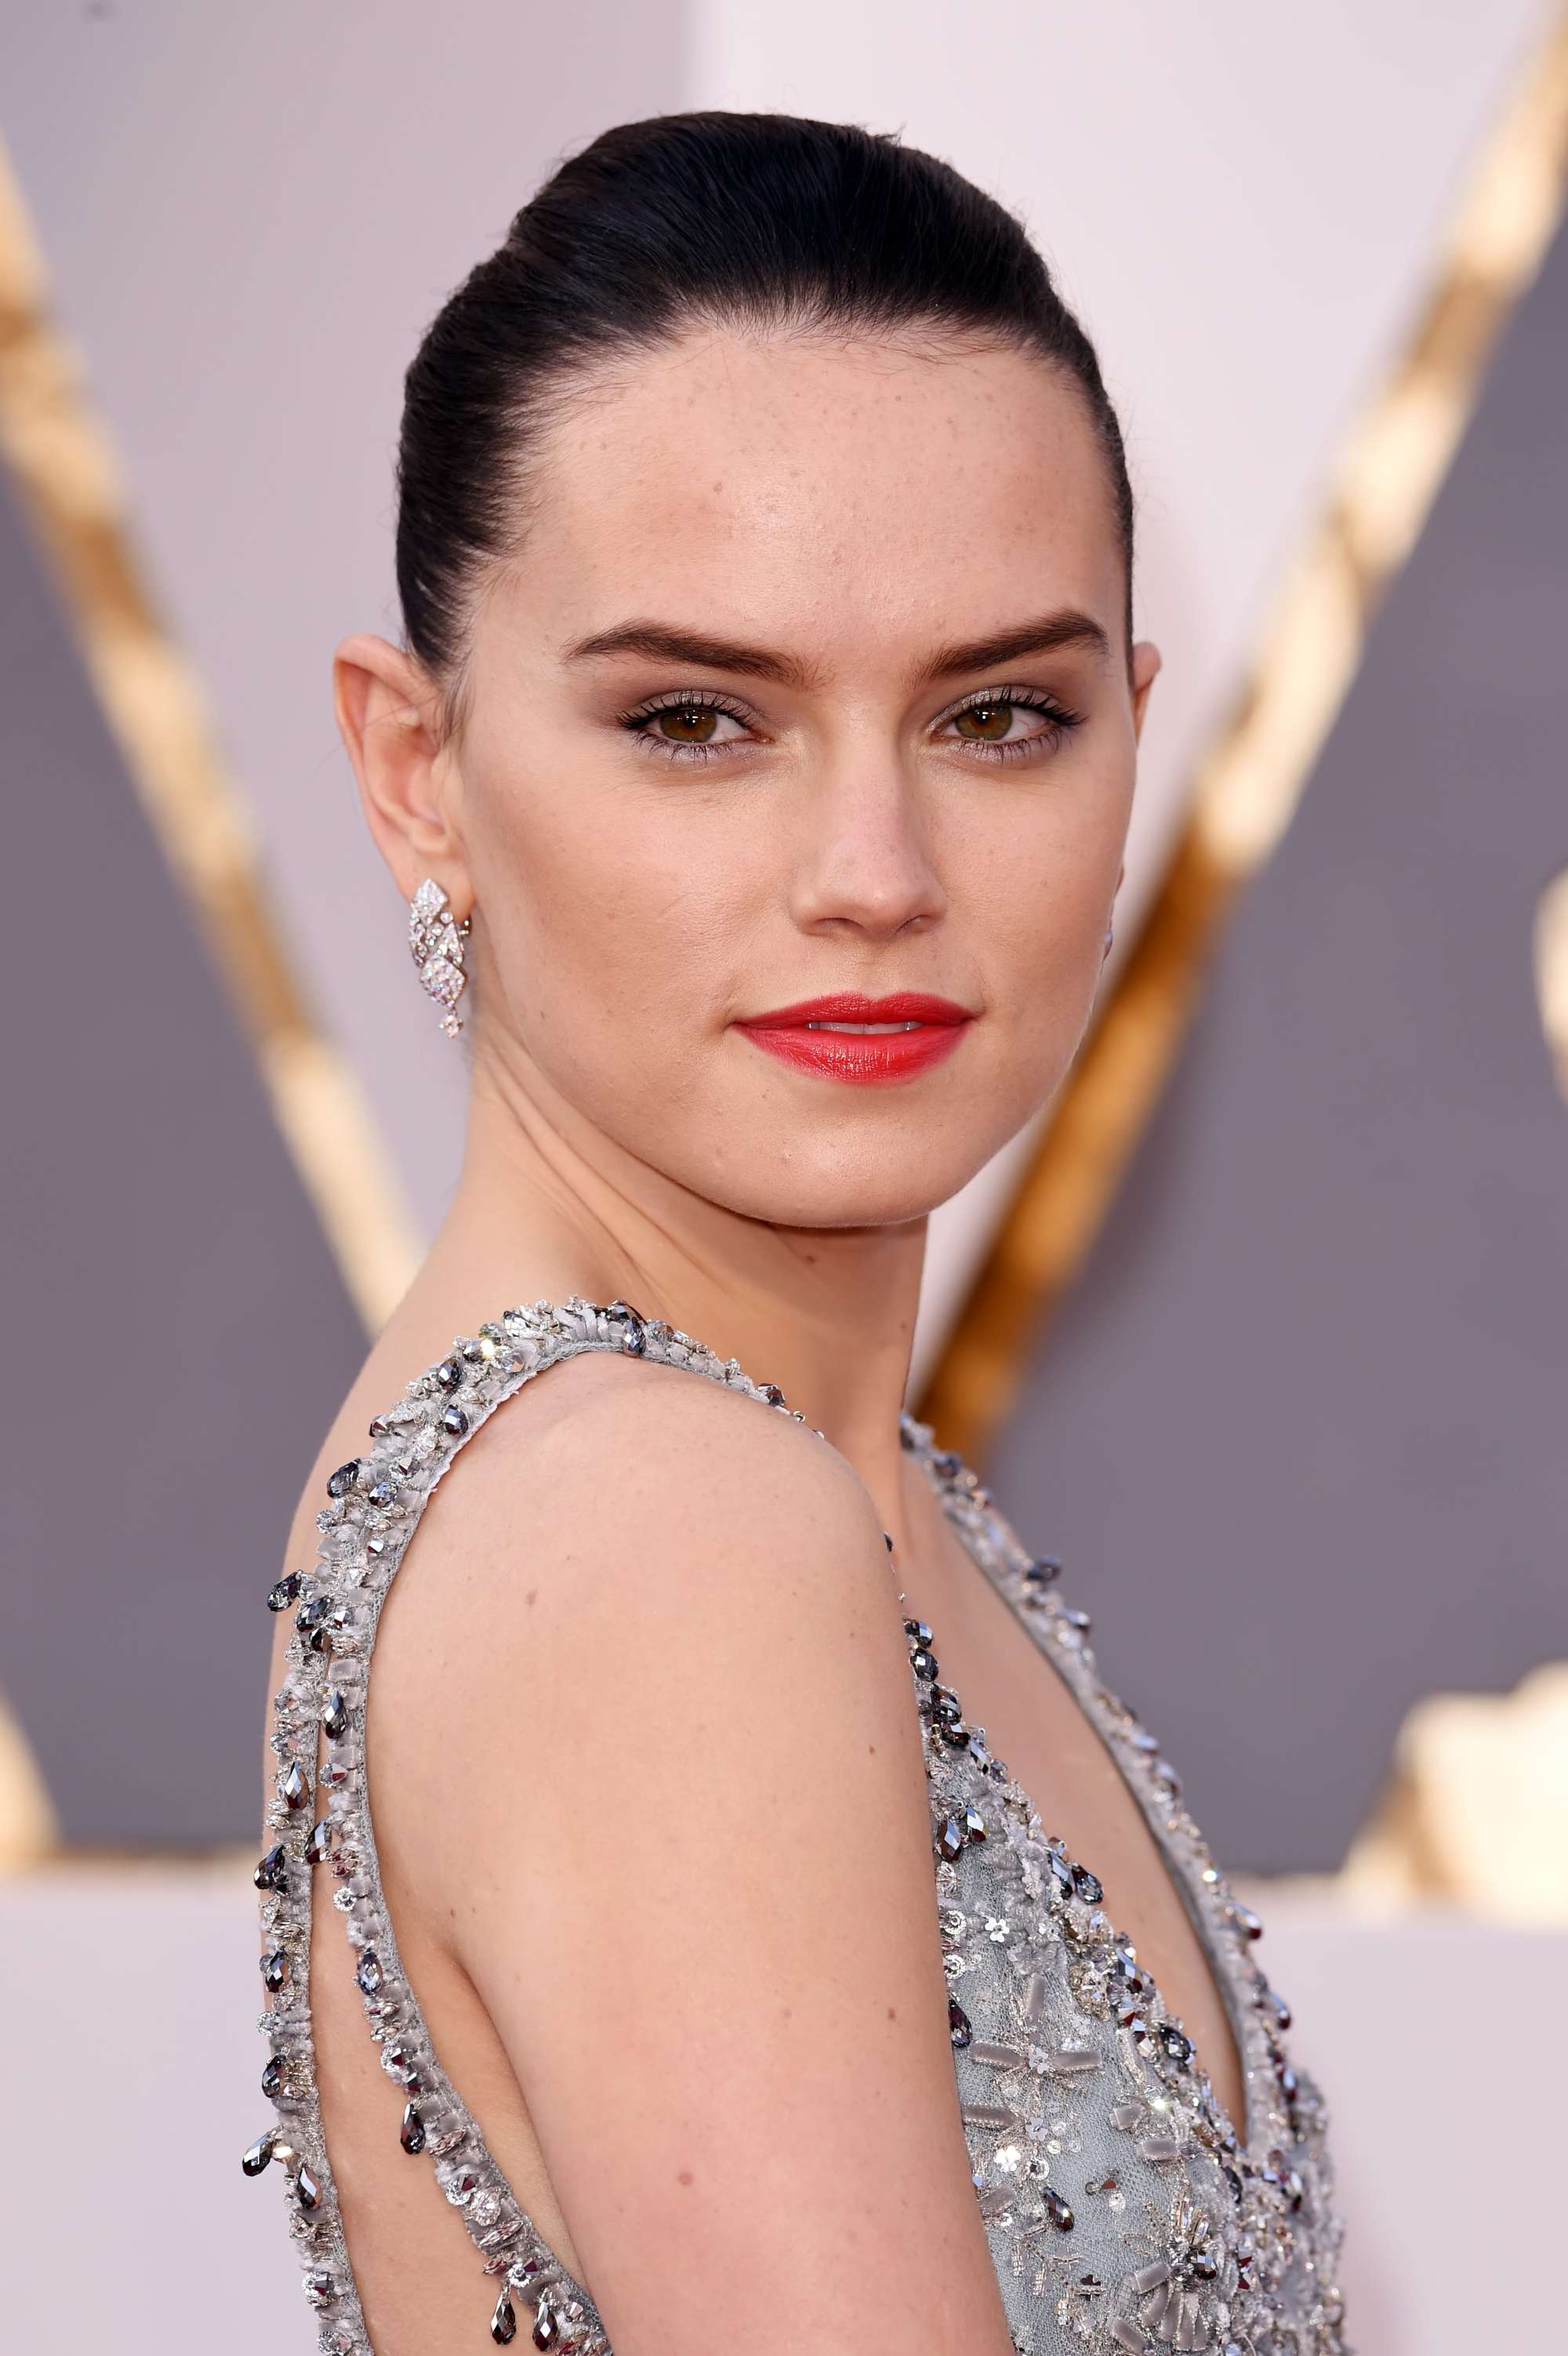 Daisy Ridley with a bun AKA Rey from Star Wars looking over her shoulder at the 88th Annual Academy Awards, Red Carpet Arrivals, Los Angeles, America - 28 Feb 2016